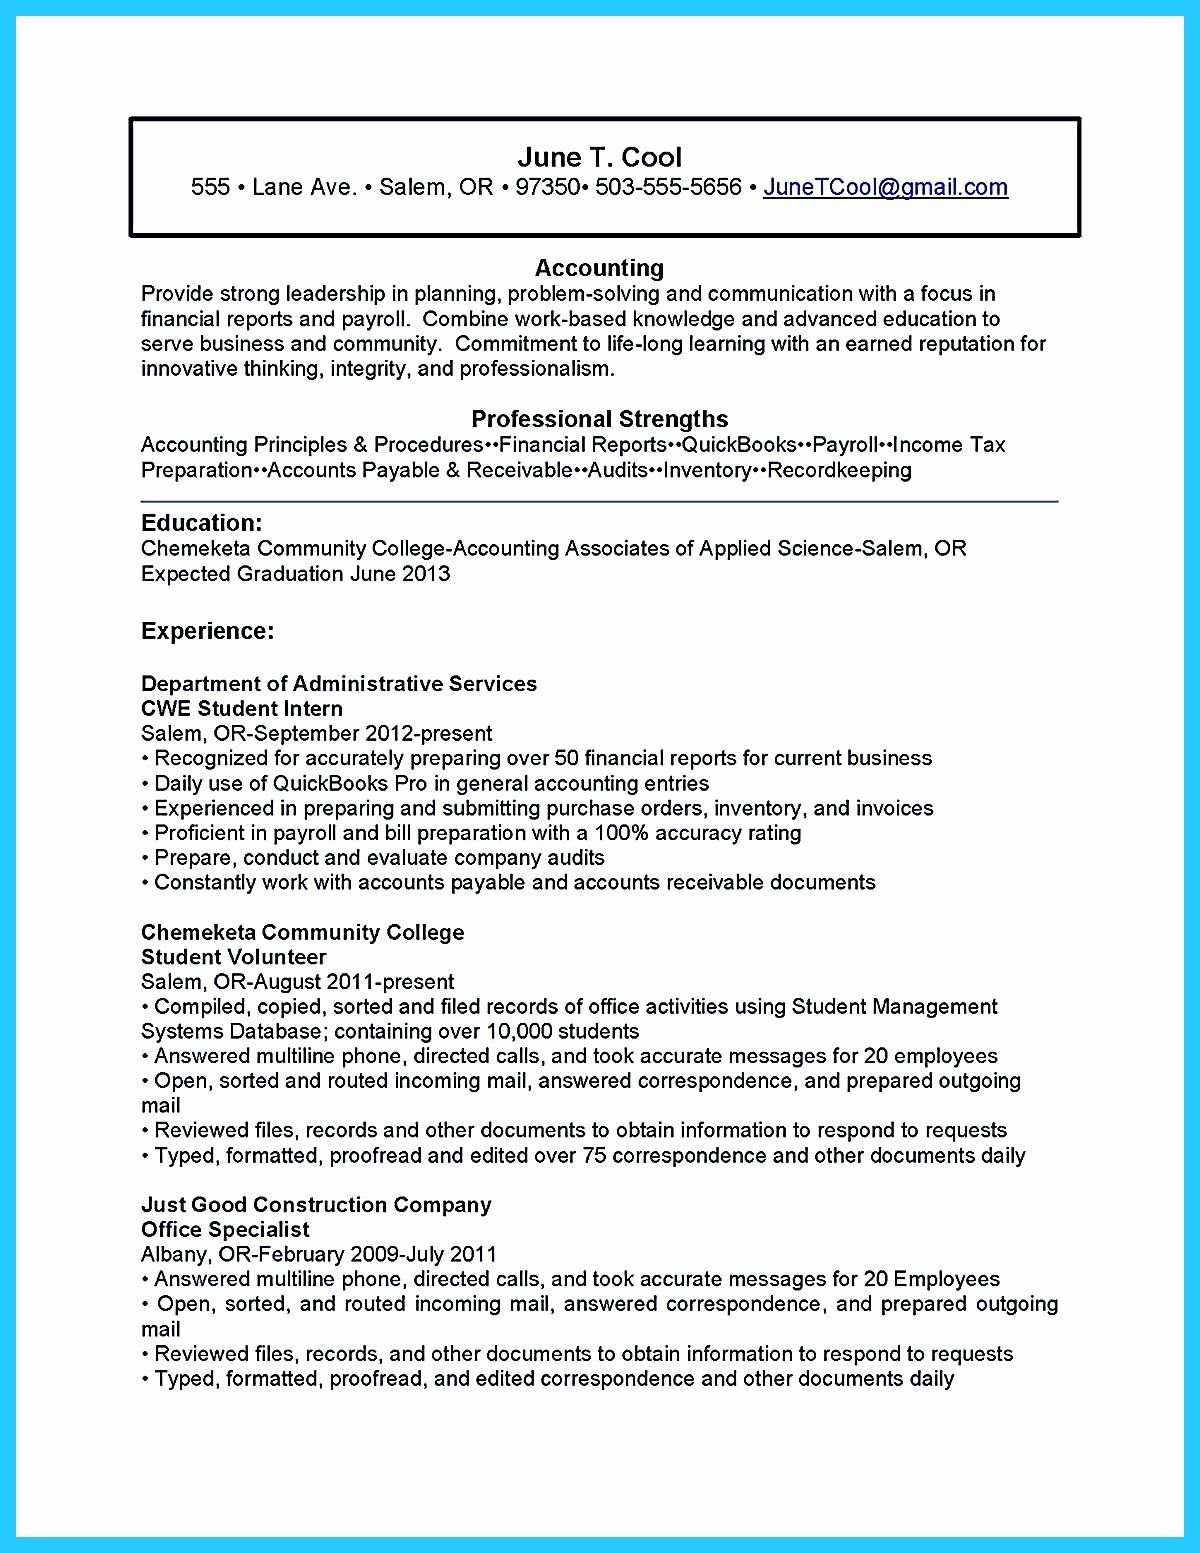 Resume For Accounting Internship With No Experience Inspirational Accounting Student Resume Here Student Resume Resume Objective Examples Resume No Experience